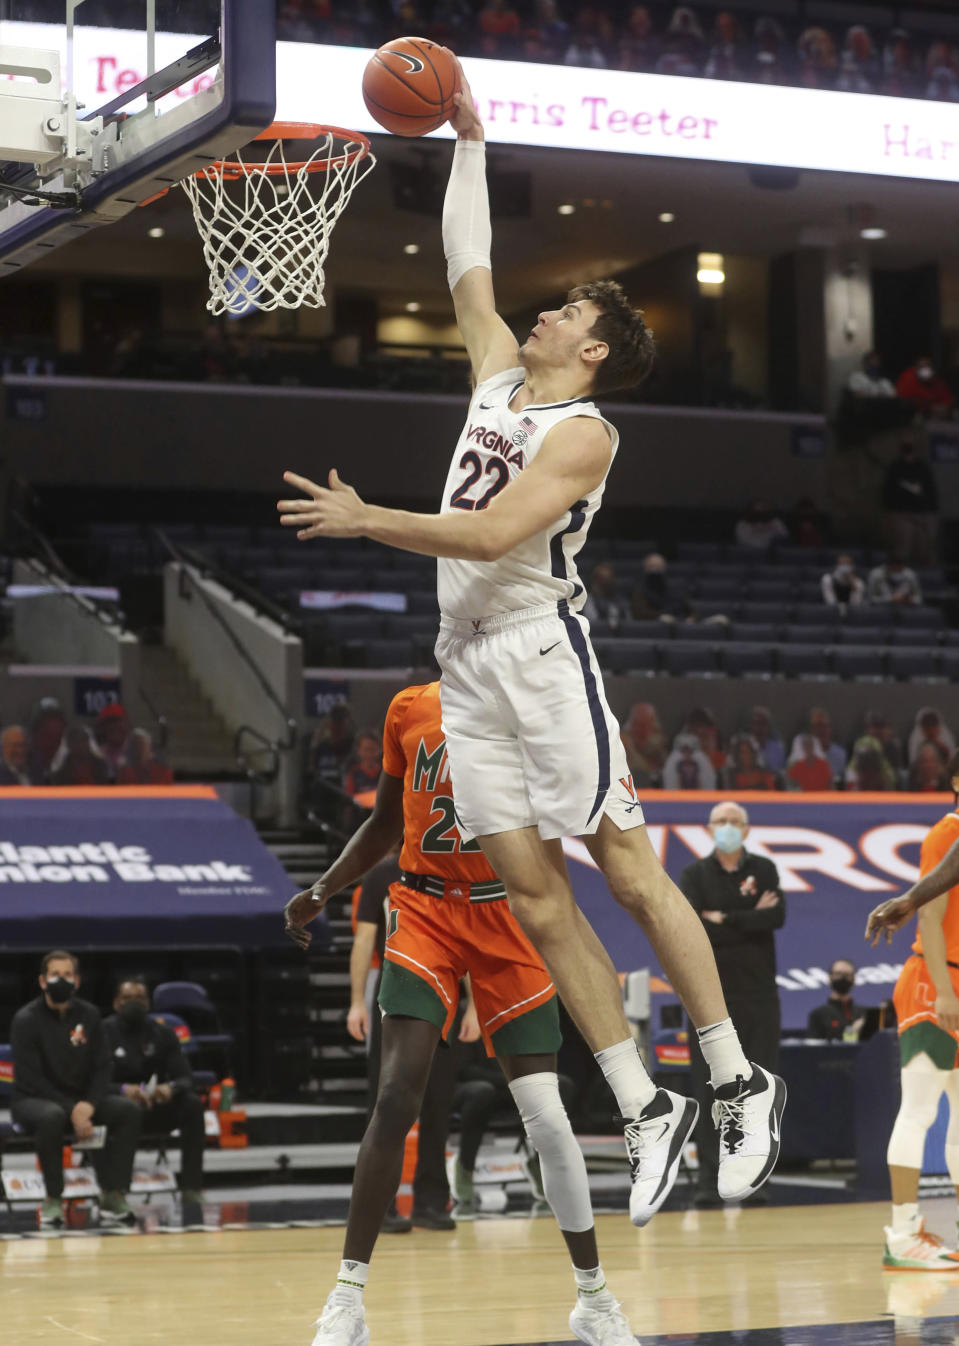 Virginia center Francisco Caffaro (22) dunks next to Miami guard Kameron McGusty (23) during an NCAA college basketball game Monday in Charlottesville, Va. (Andrew Shurtleff/The Daily Progress via AP, Pool)